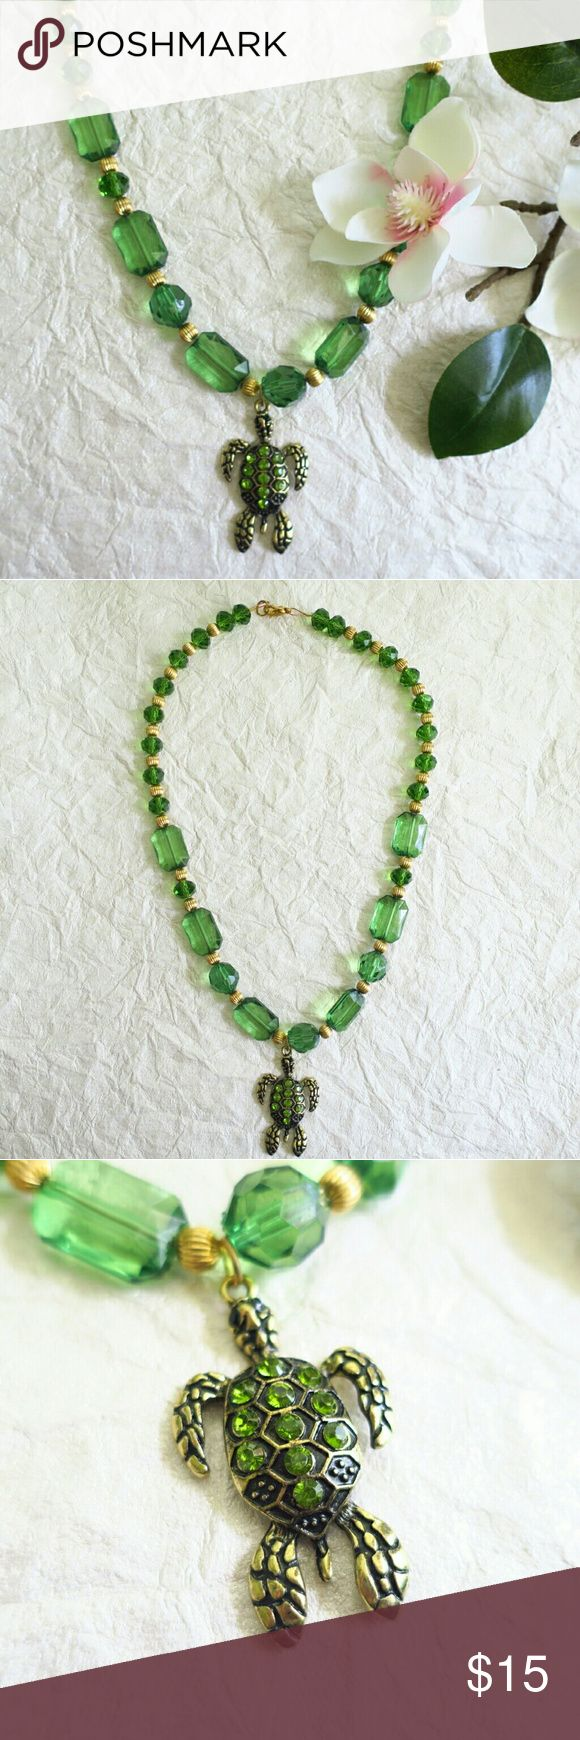 Green Statement Necklace w Turtle Pendant Green Transparent Beads Gol Metal Beads Turtle Pendant with Green Rhinestones   Measurement in photo  TOP RATED SELLER  FAST SHIPPING  Create a bundle of items and get a Private discounted price offer from me Jewelry Necklaces